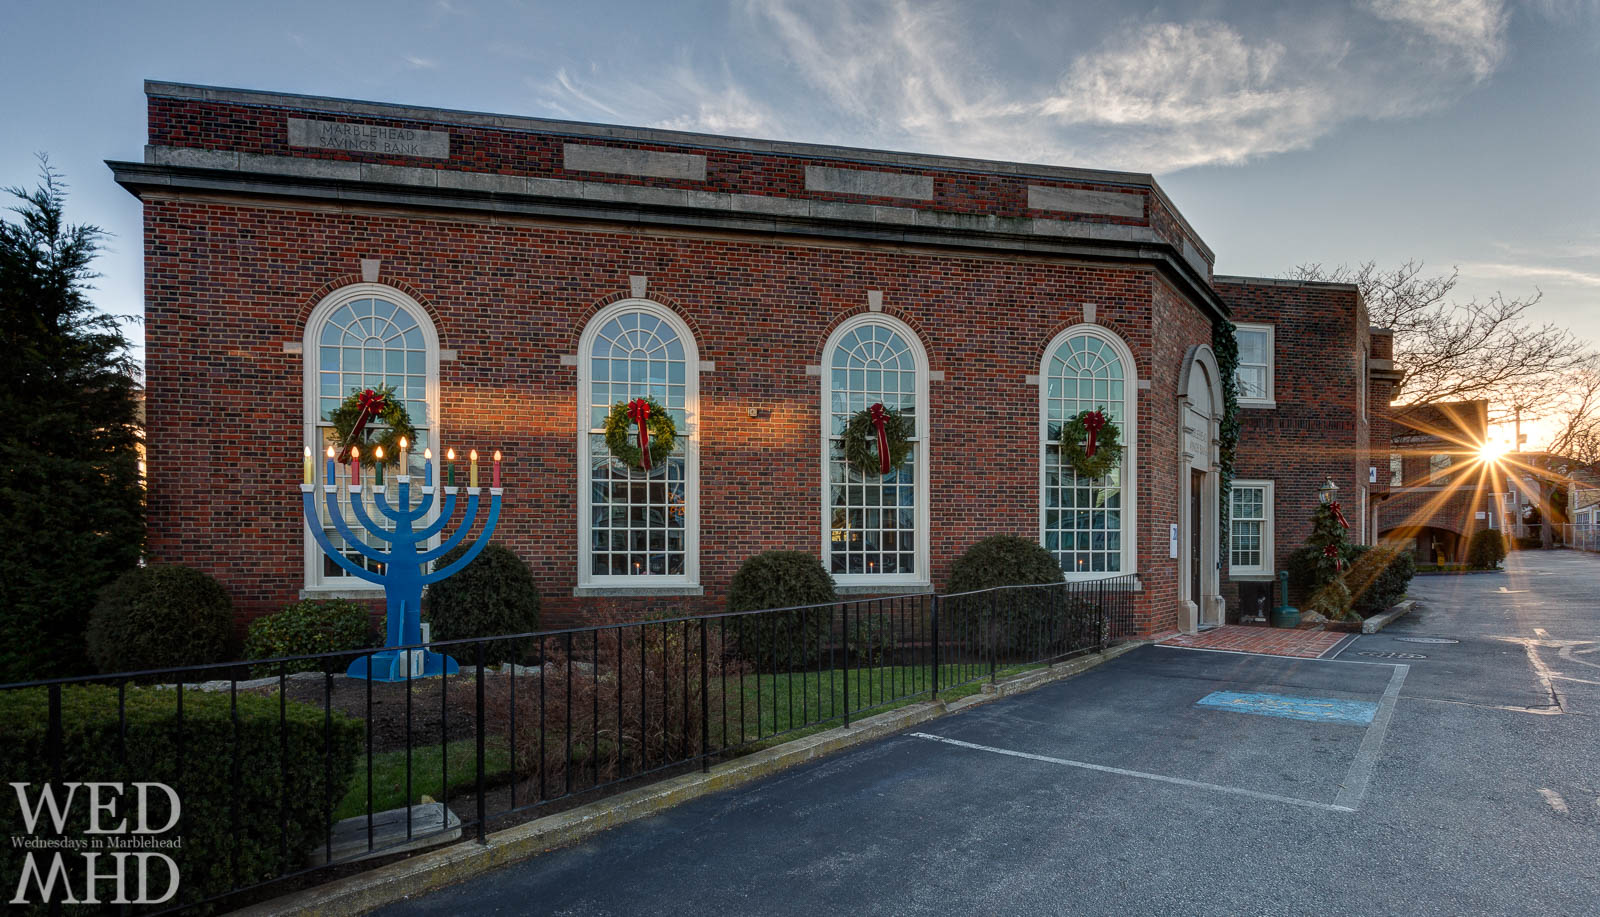 The Menorah at Marblehead Savings Bank